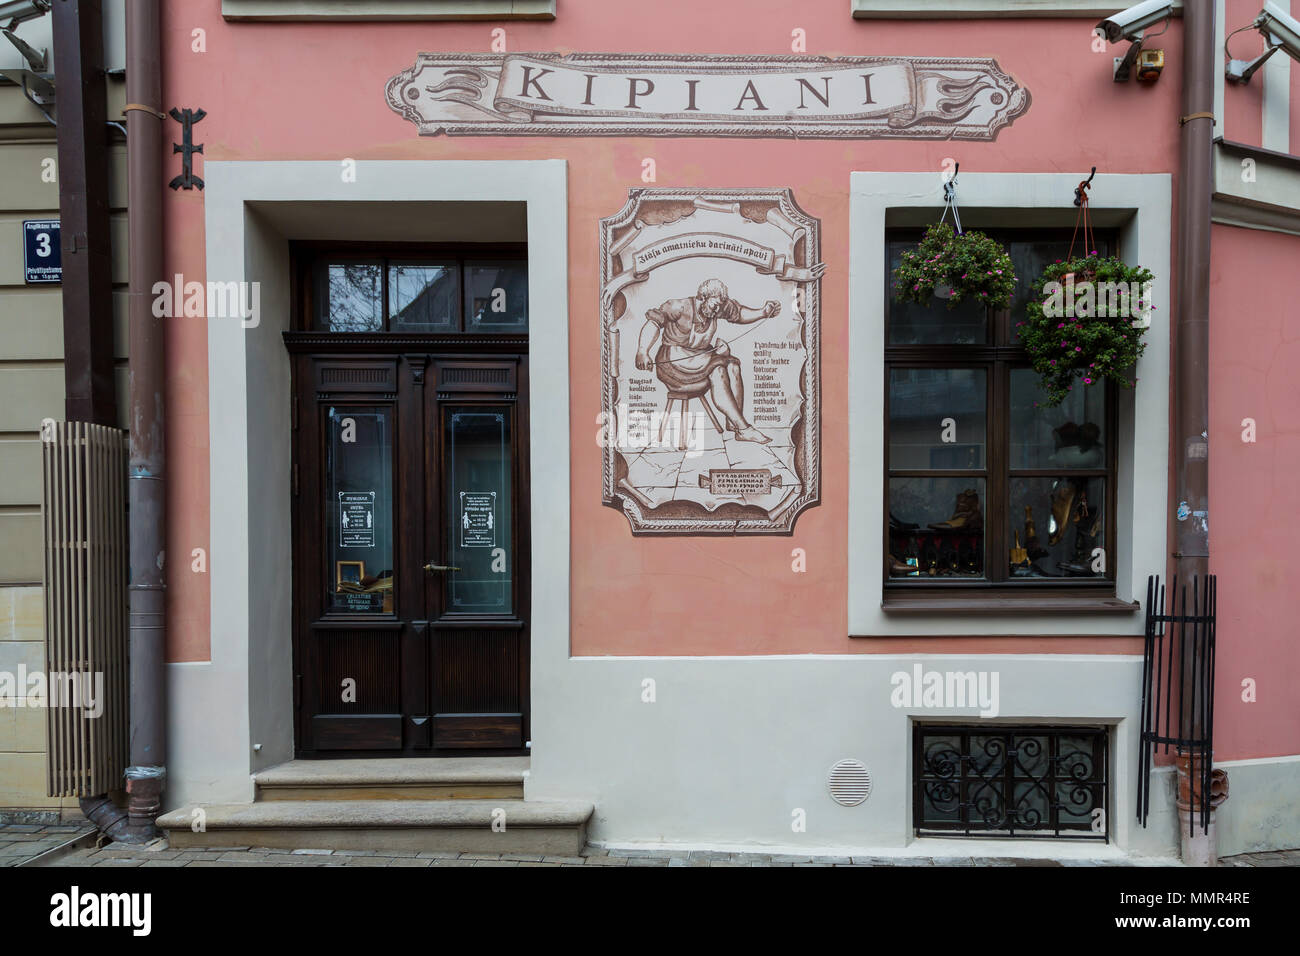 RIGA, LATVIA - NOVEMBER 23, 2014. Shop Kipiani, shoe store. Latvia, Riga - Stock Image